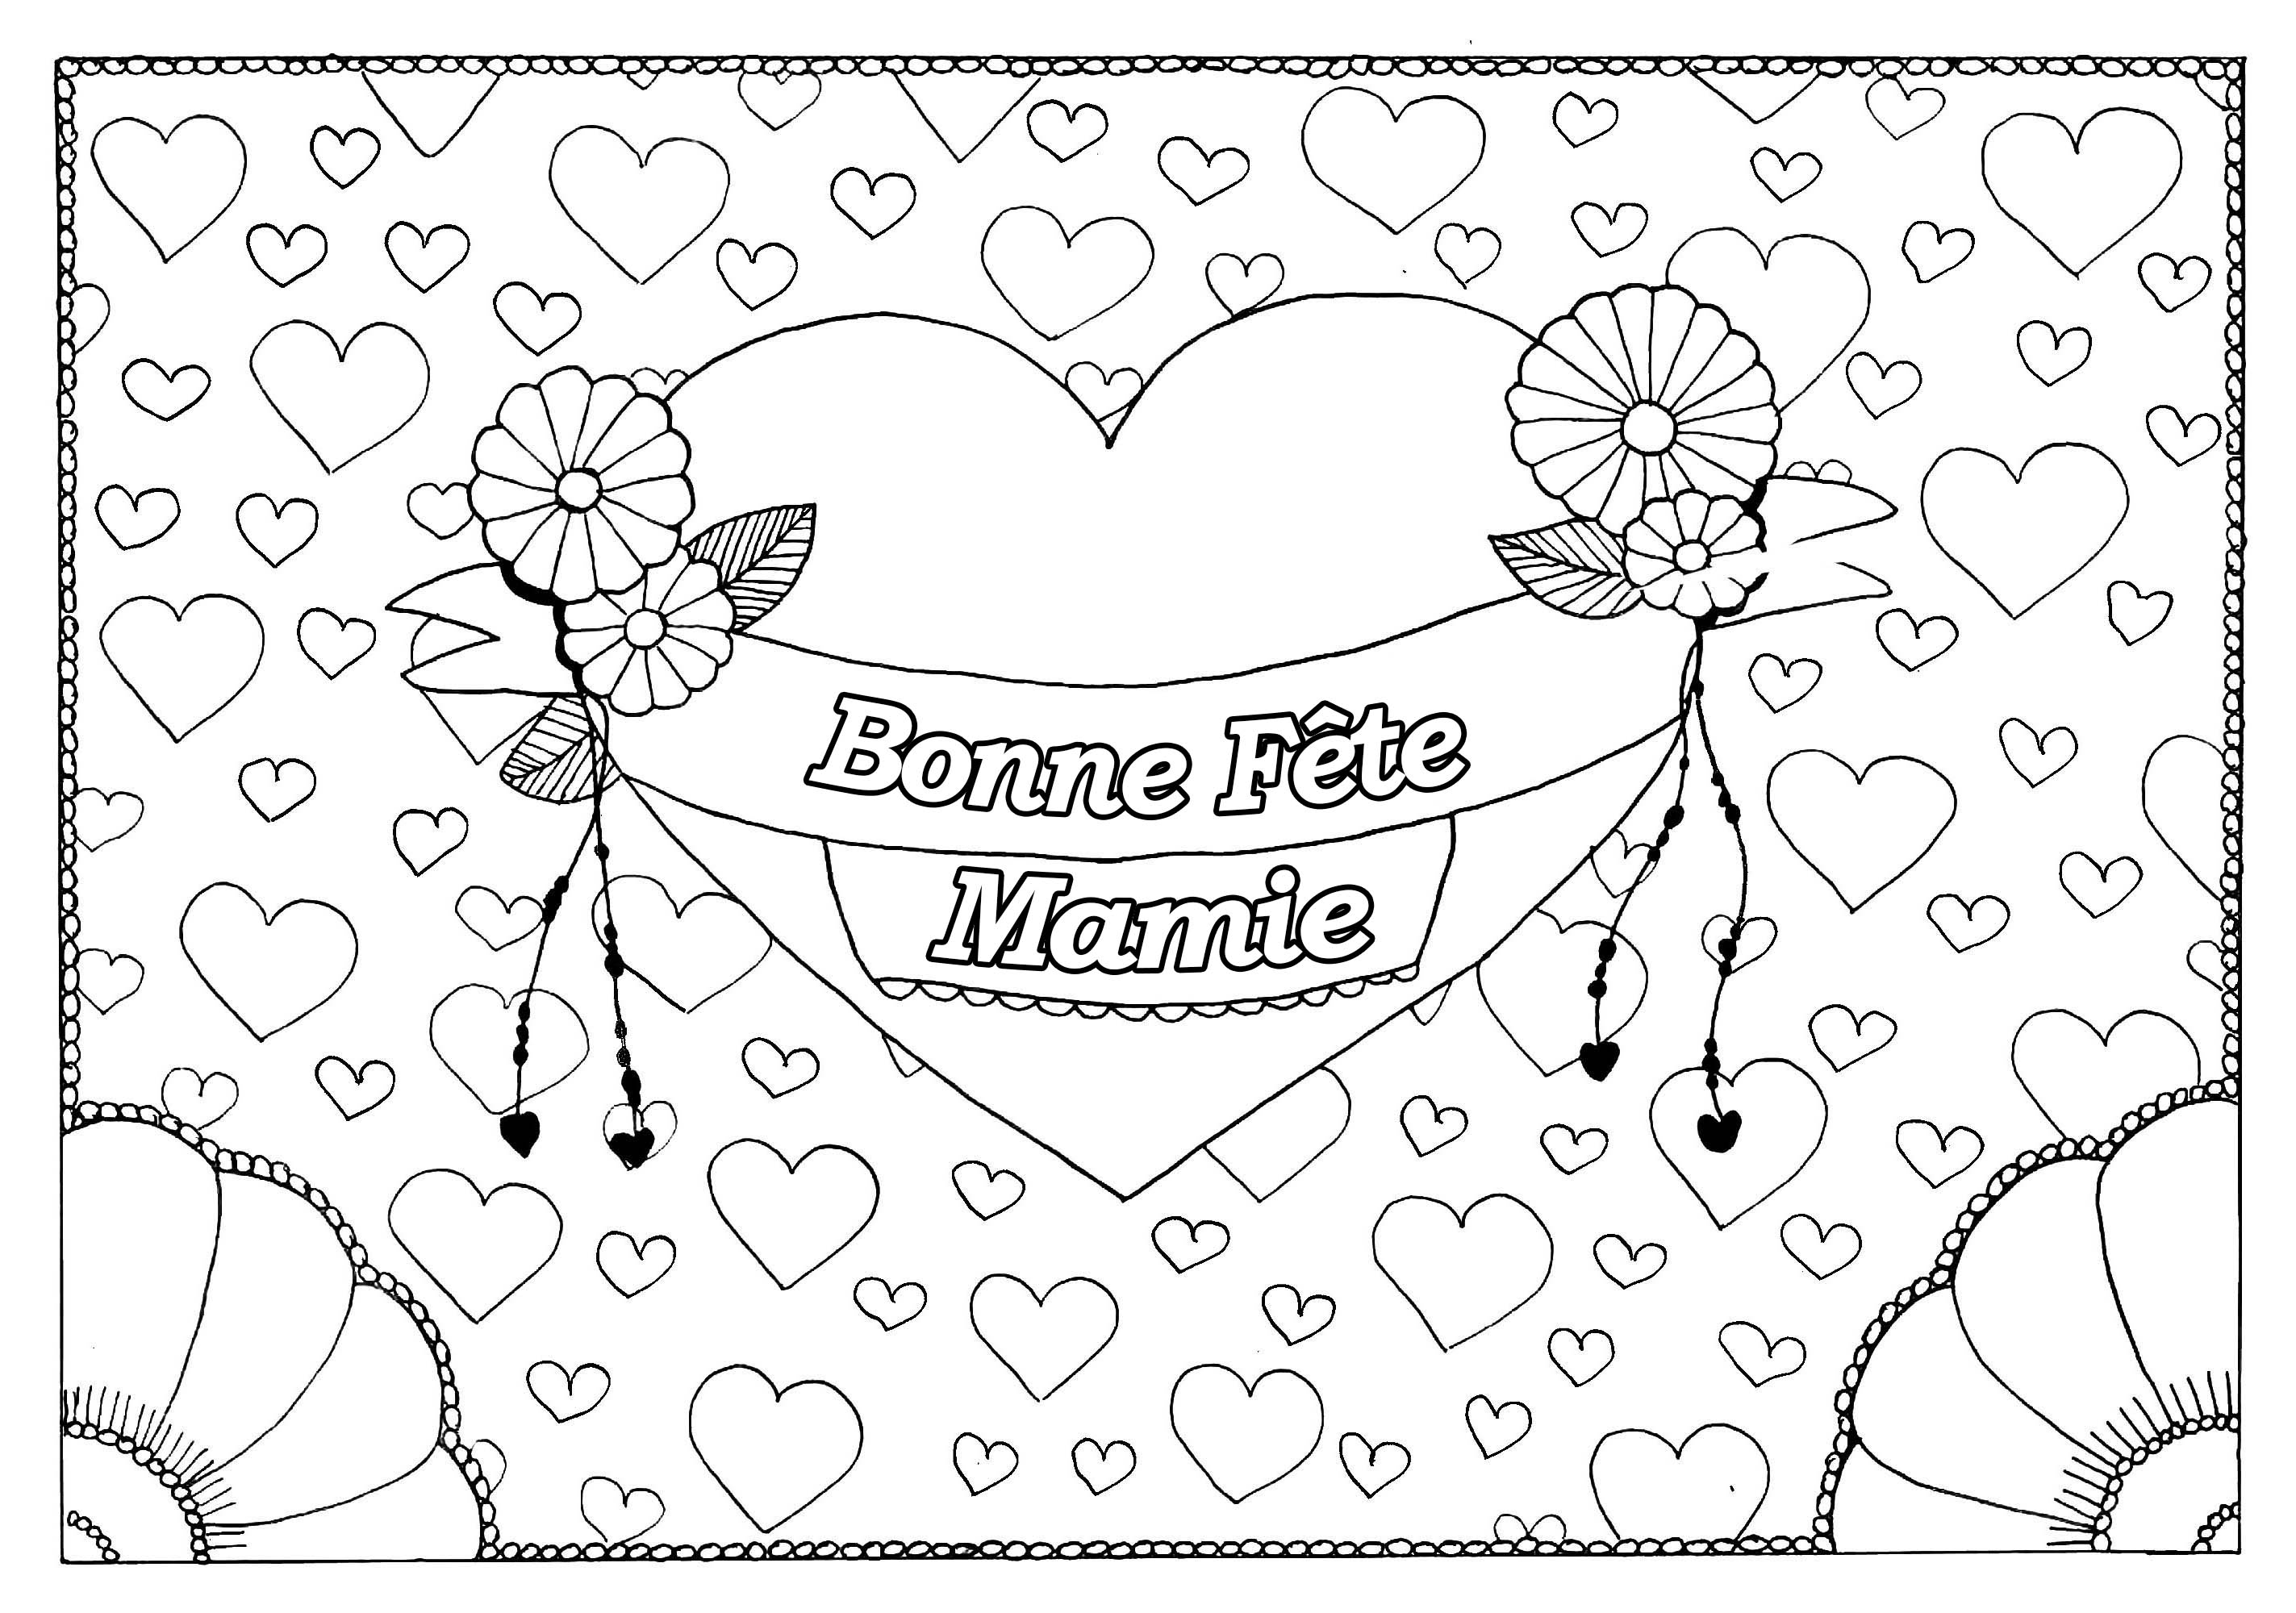 Fete Grand - Fêtes Des Grands Parents - Coloriages encequiconcerne Fete Des Peres Dessin